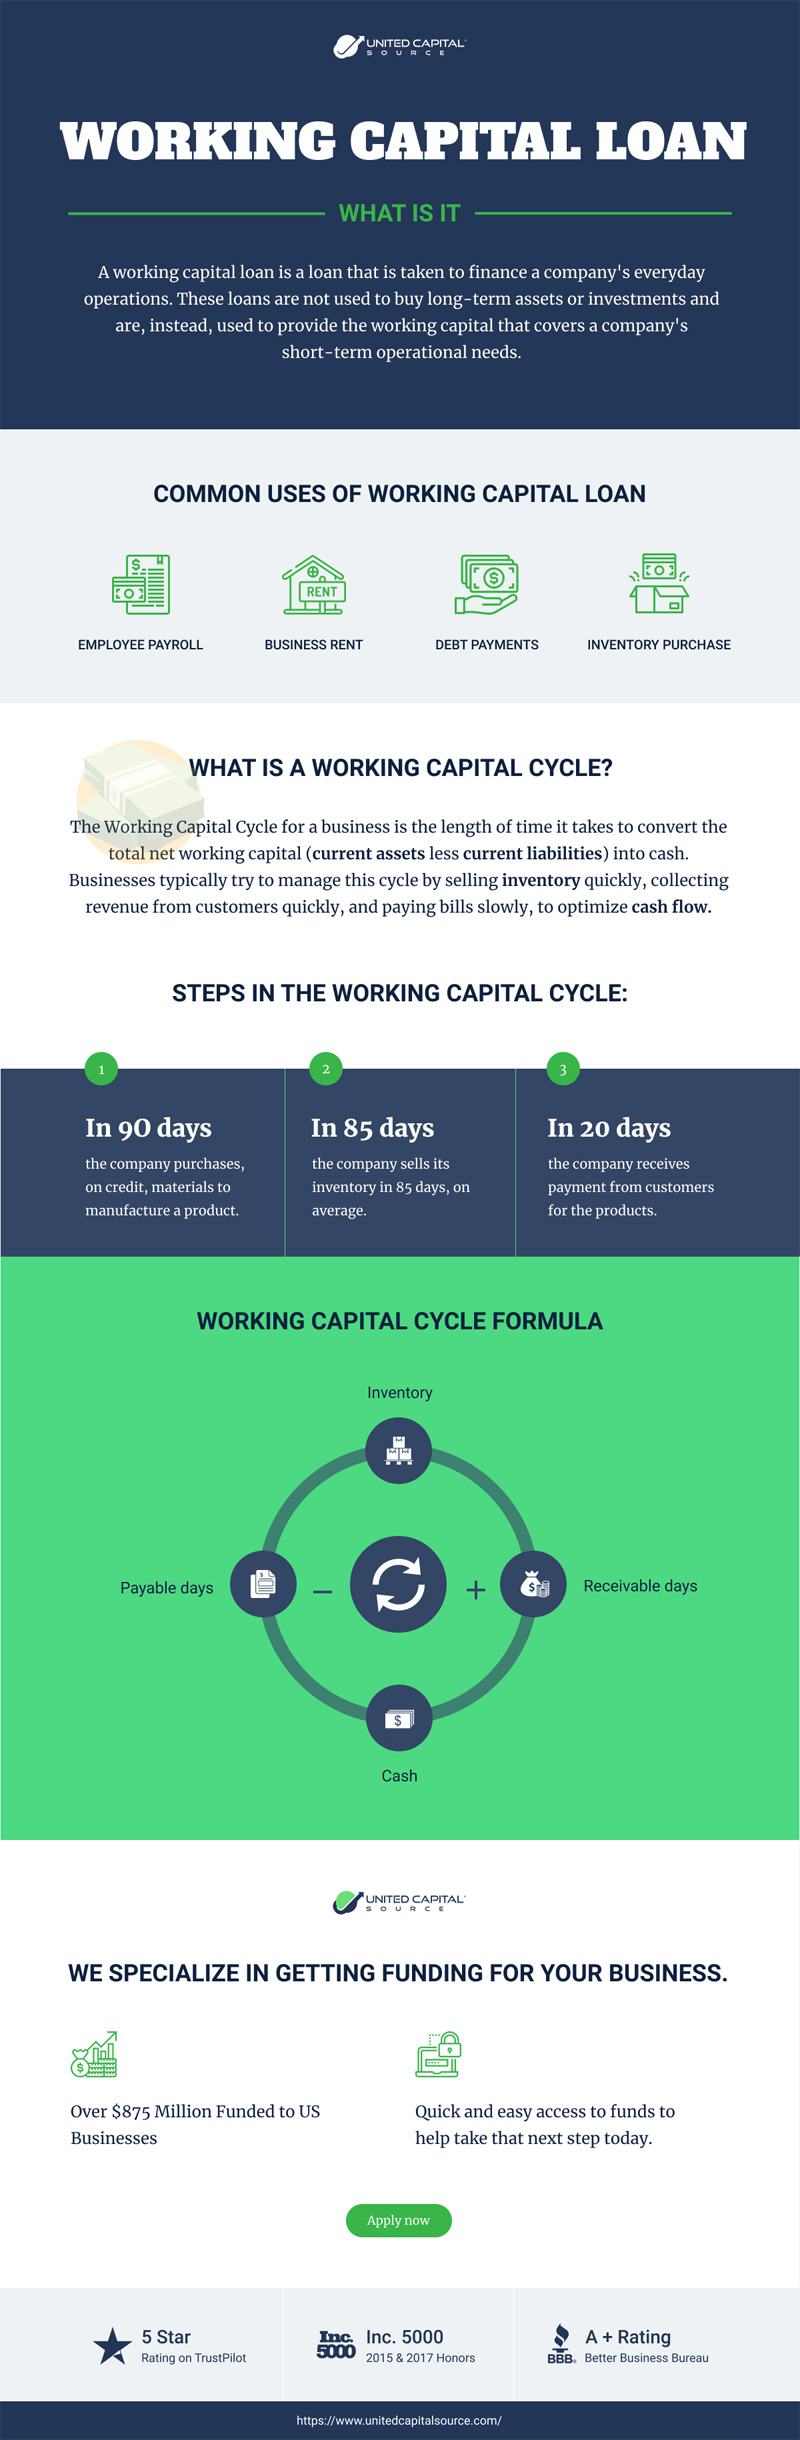 What is a Working Capital Loan?